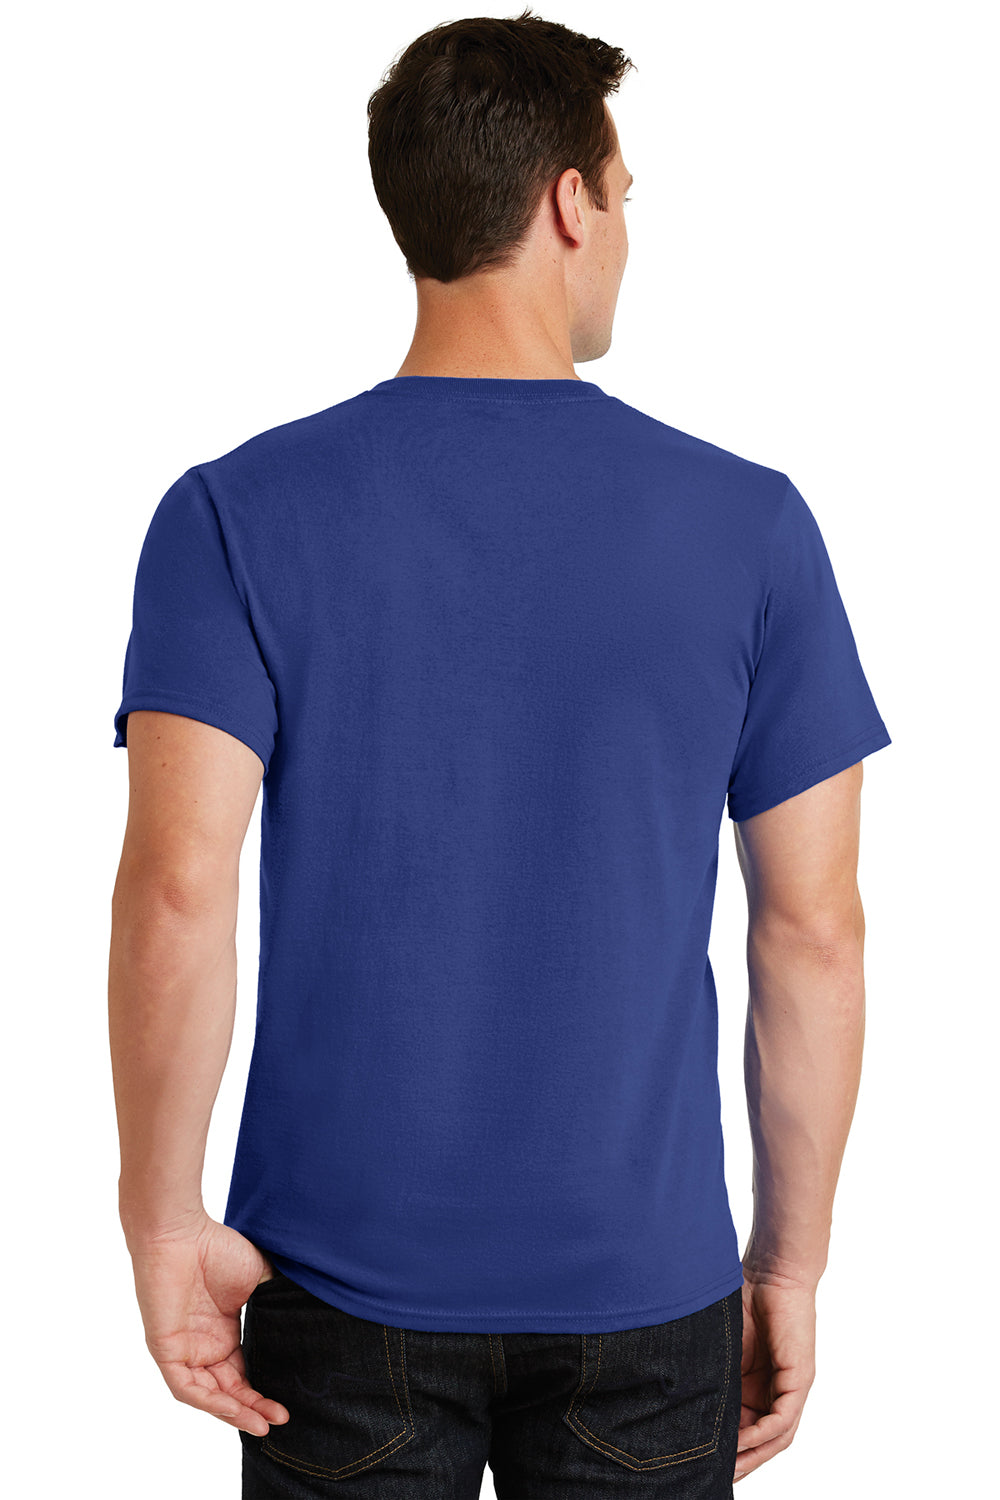 Port & Company PC61 Mens Essential Short Sleeve Crewneck T-Shirt Deep Marine Blue Back